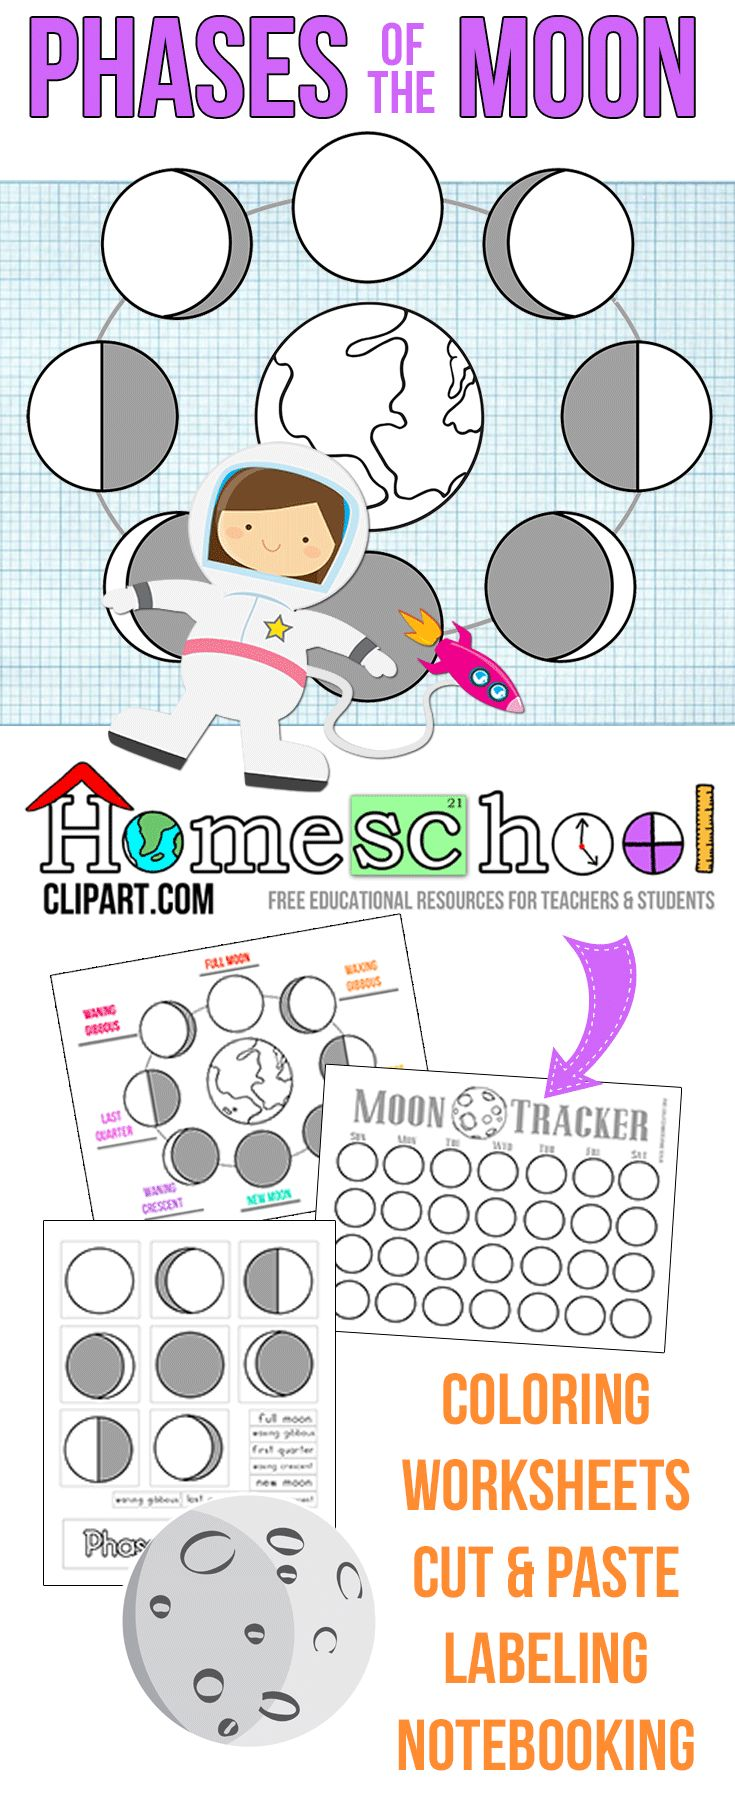 Free Phases of the Moon Activity Pages. Moon Tracker, Labeling, Coloring, Cut and Paste and more!